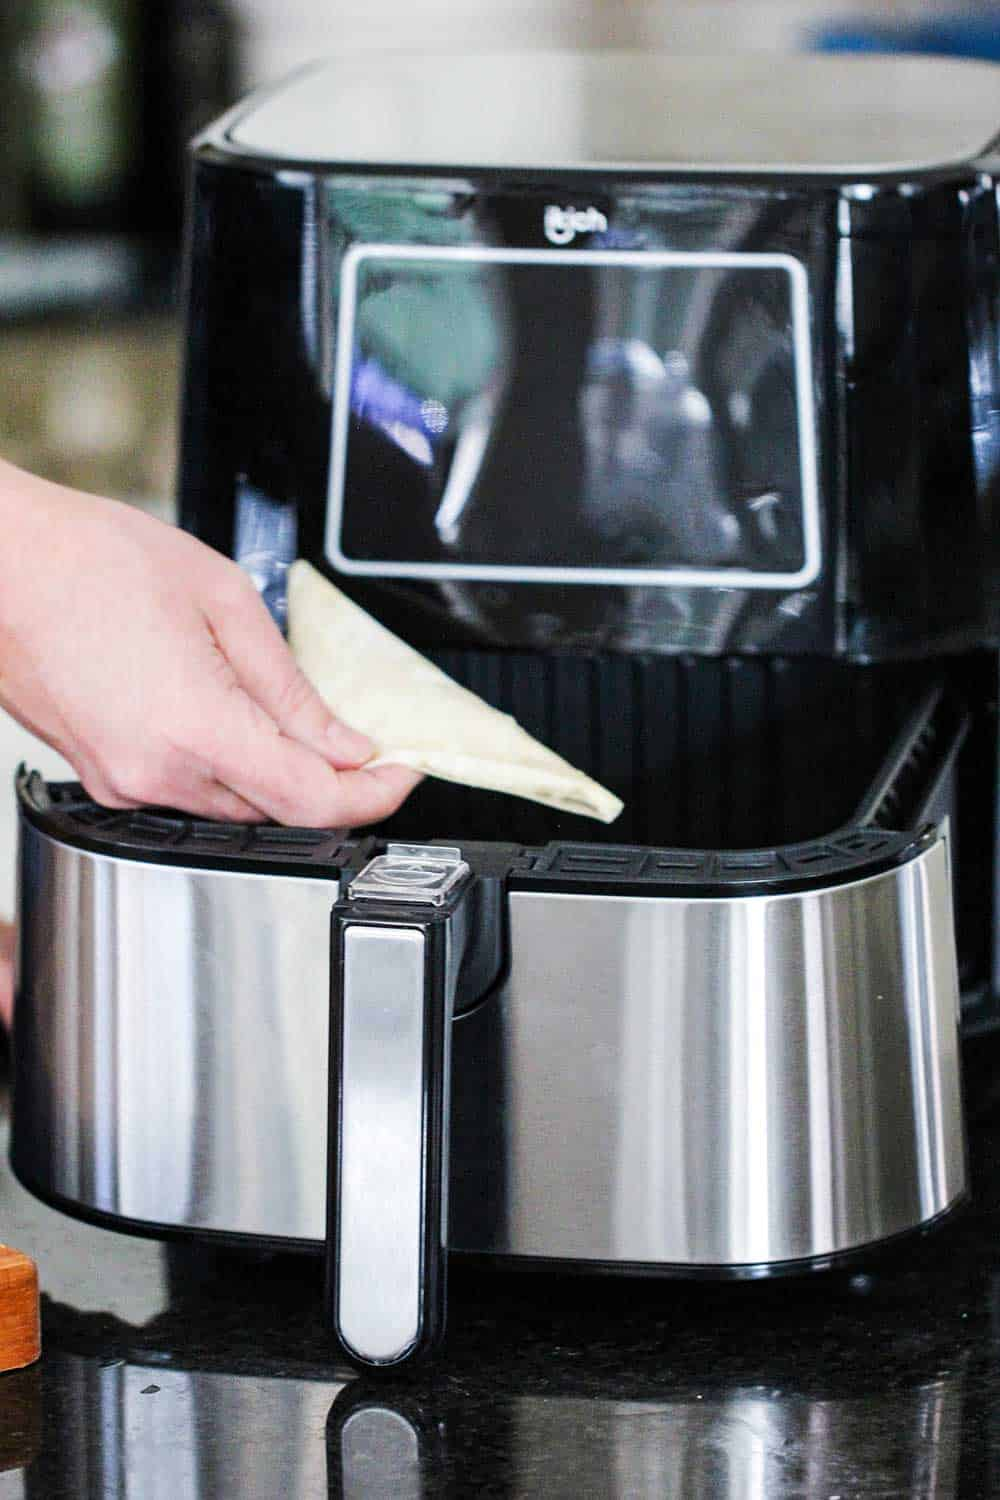 A hand lowering a phyllo triangle into an air fryer basket.